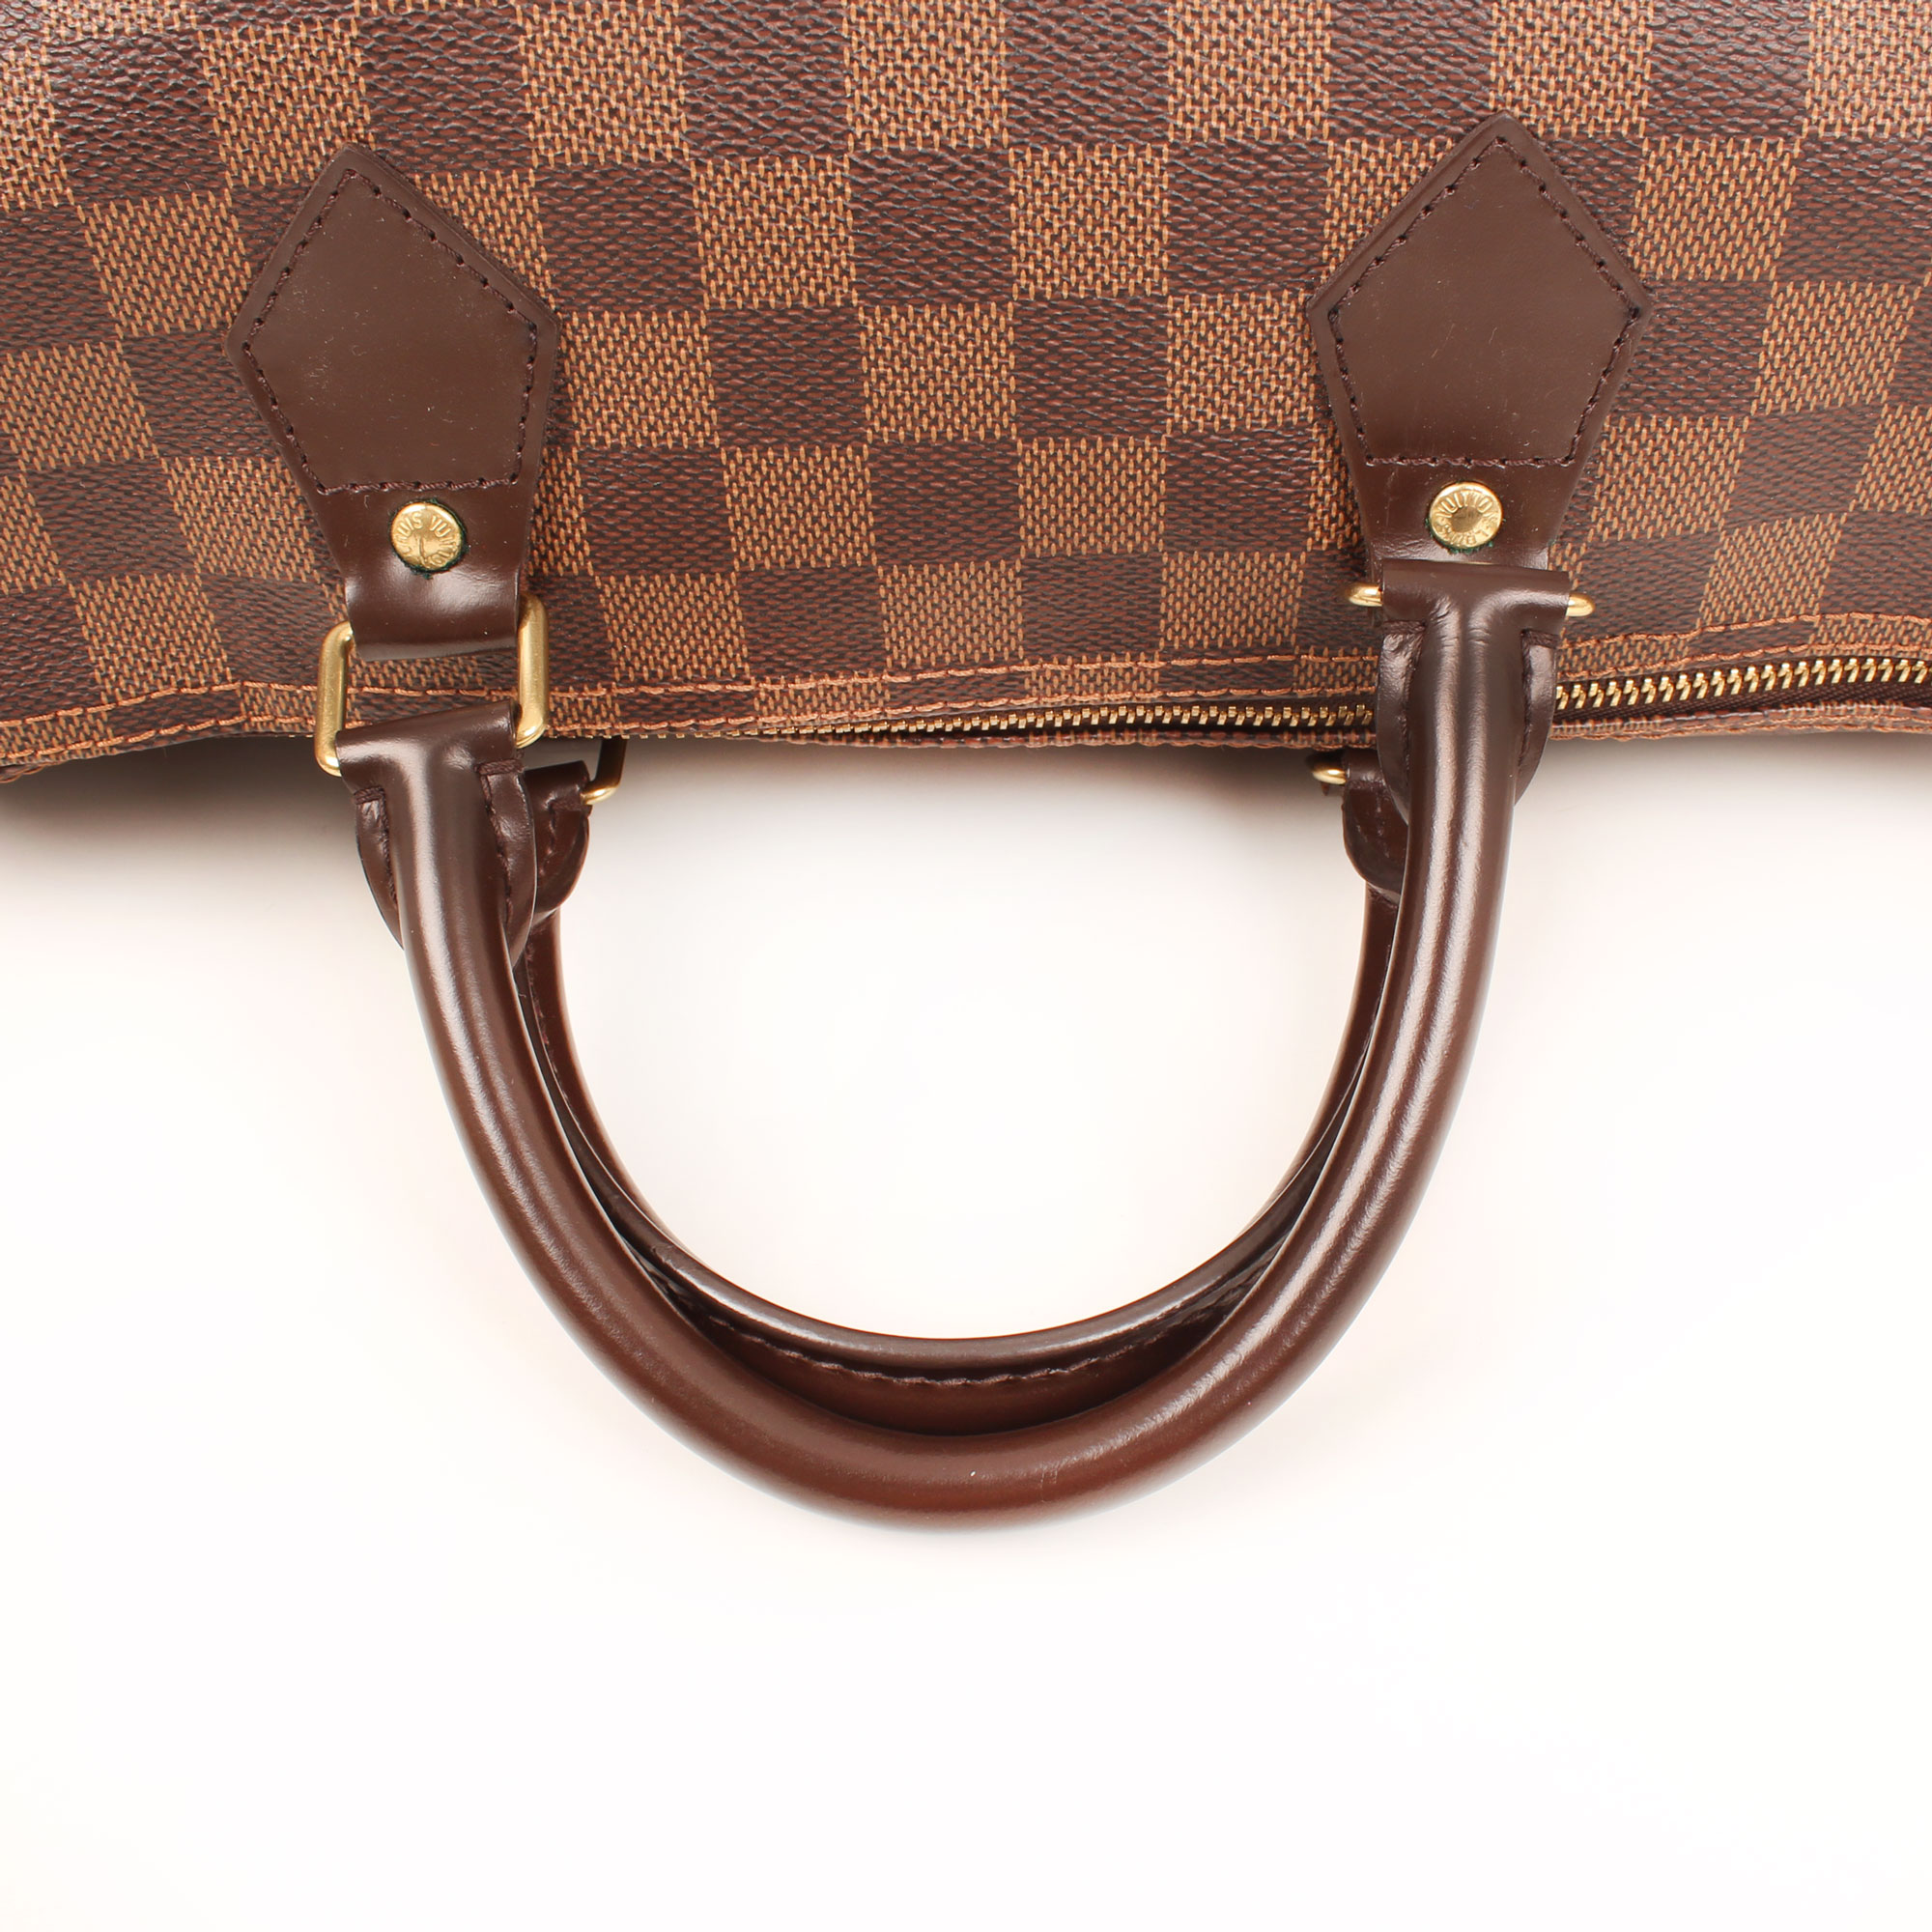 bag-louis-vuitton-speedy-35-damier-ebene-handles